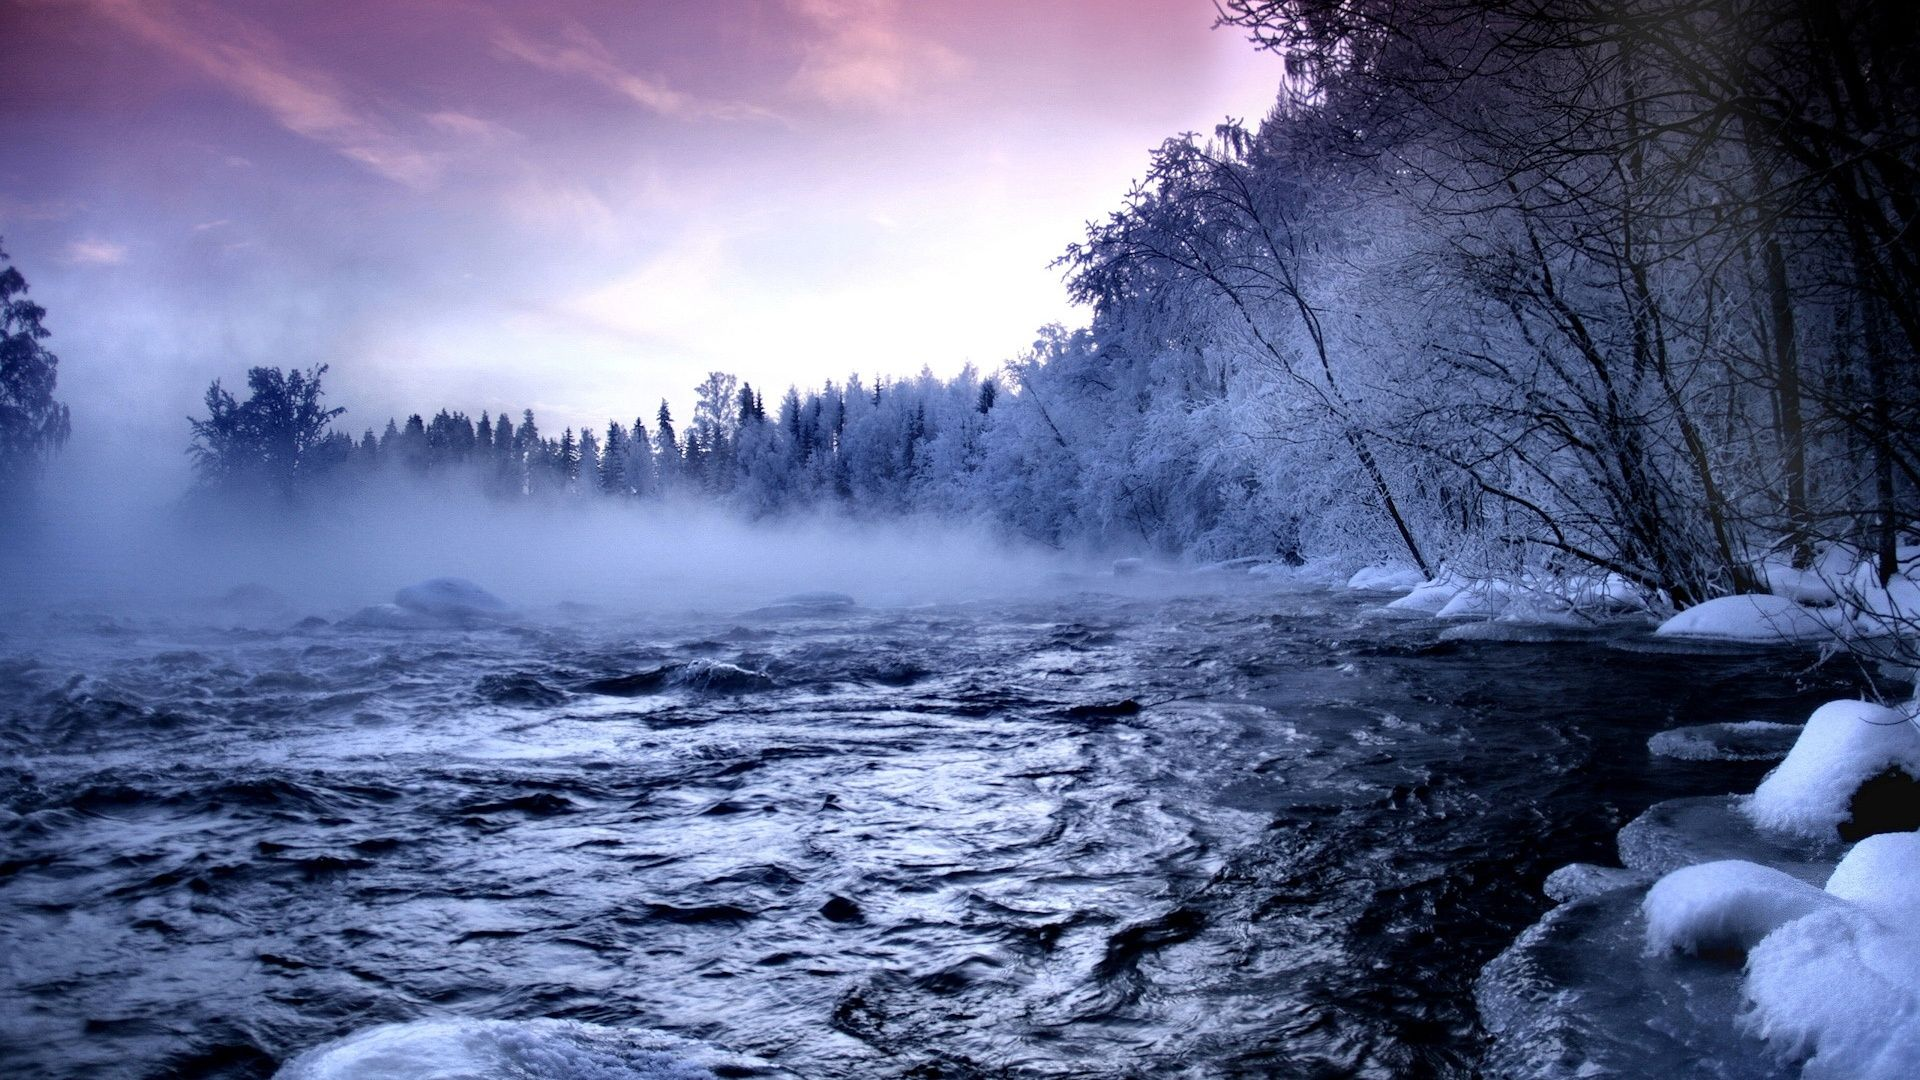 Beautiful Winter Landscape in Nature picture nr 1920x1080